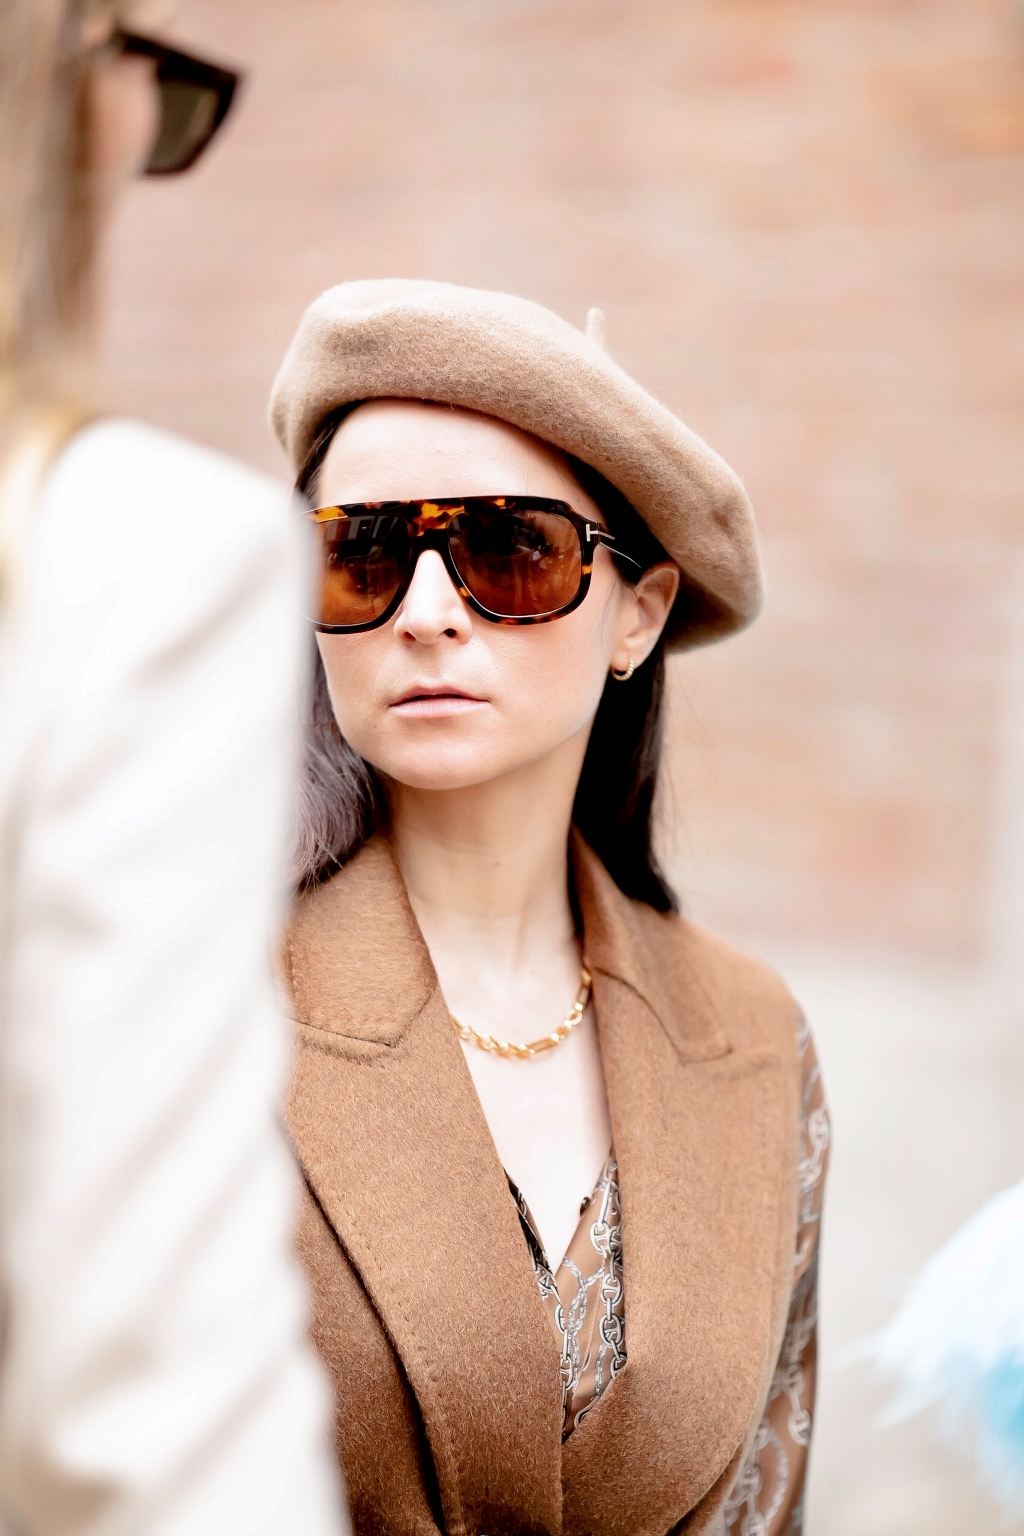 NickLeuze-MilanFashionWeek-SS21-Day2- Juliacomil Max Mara